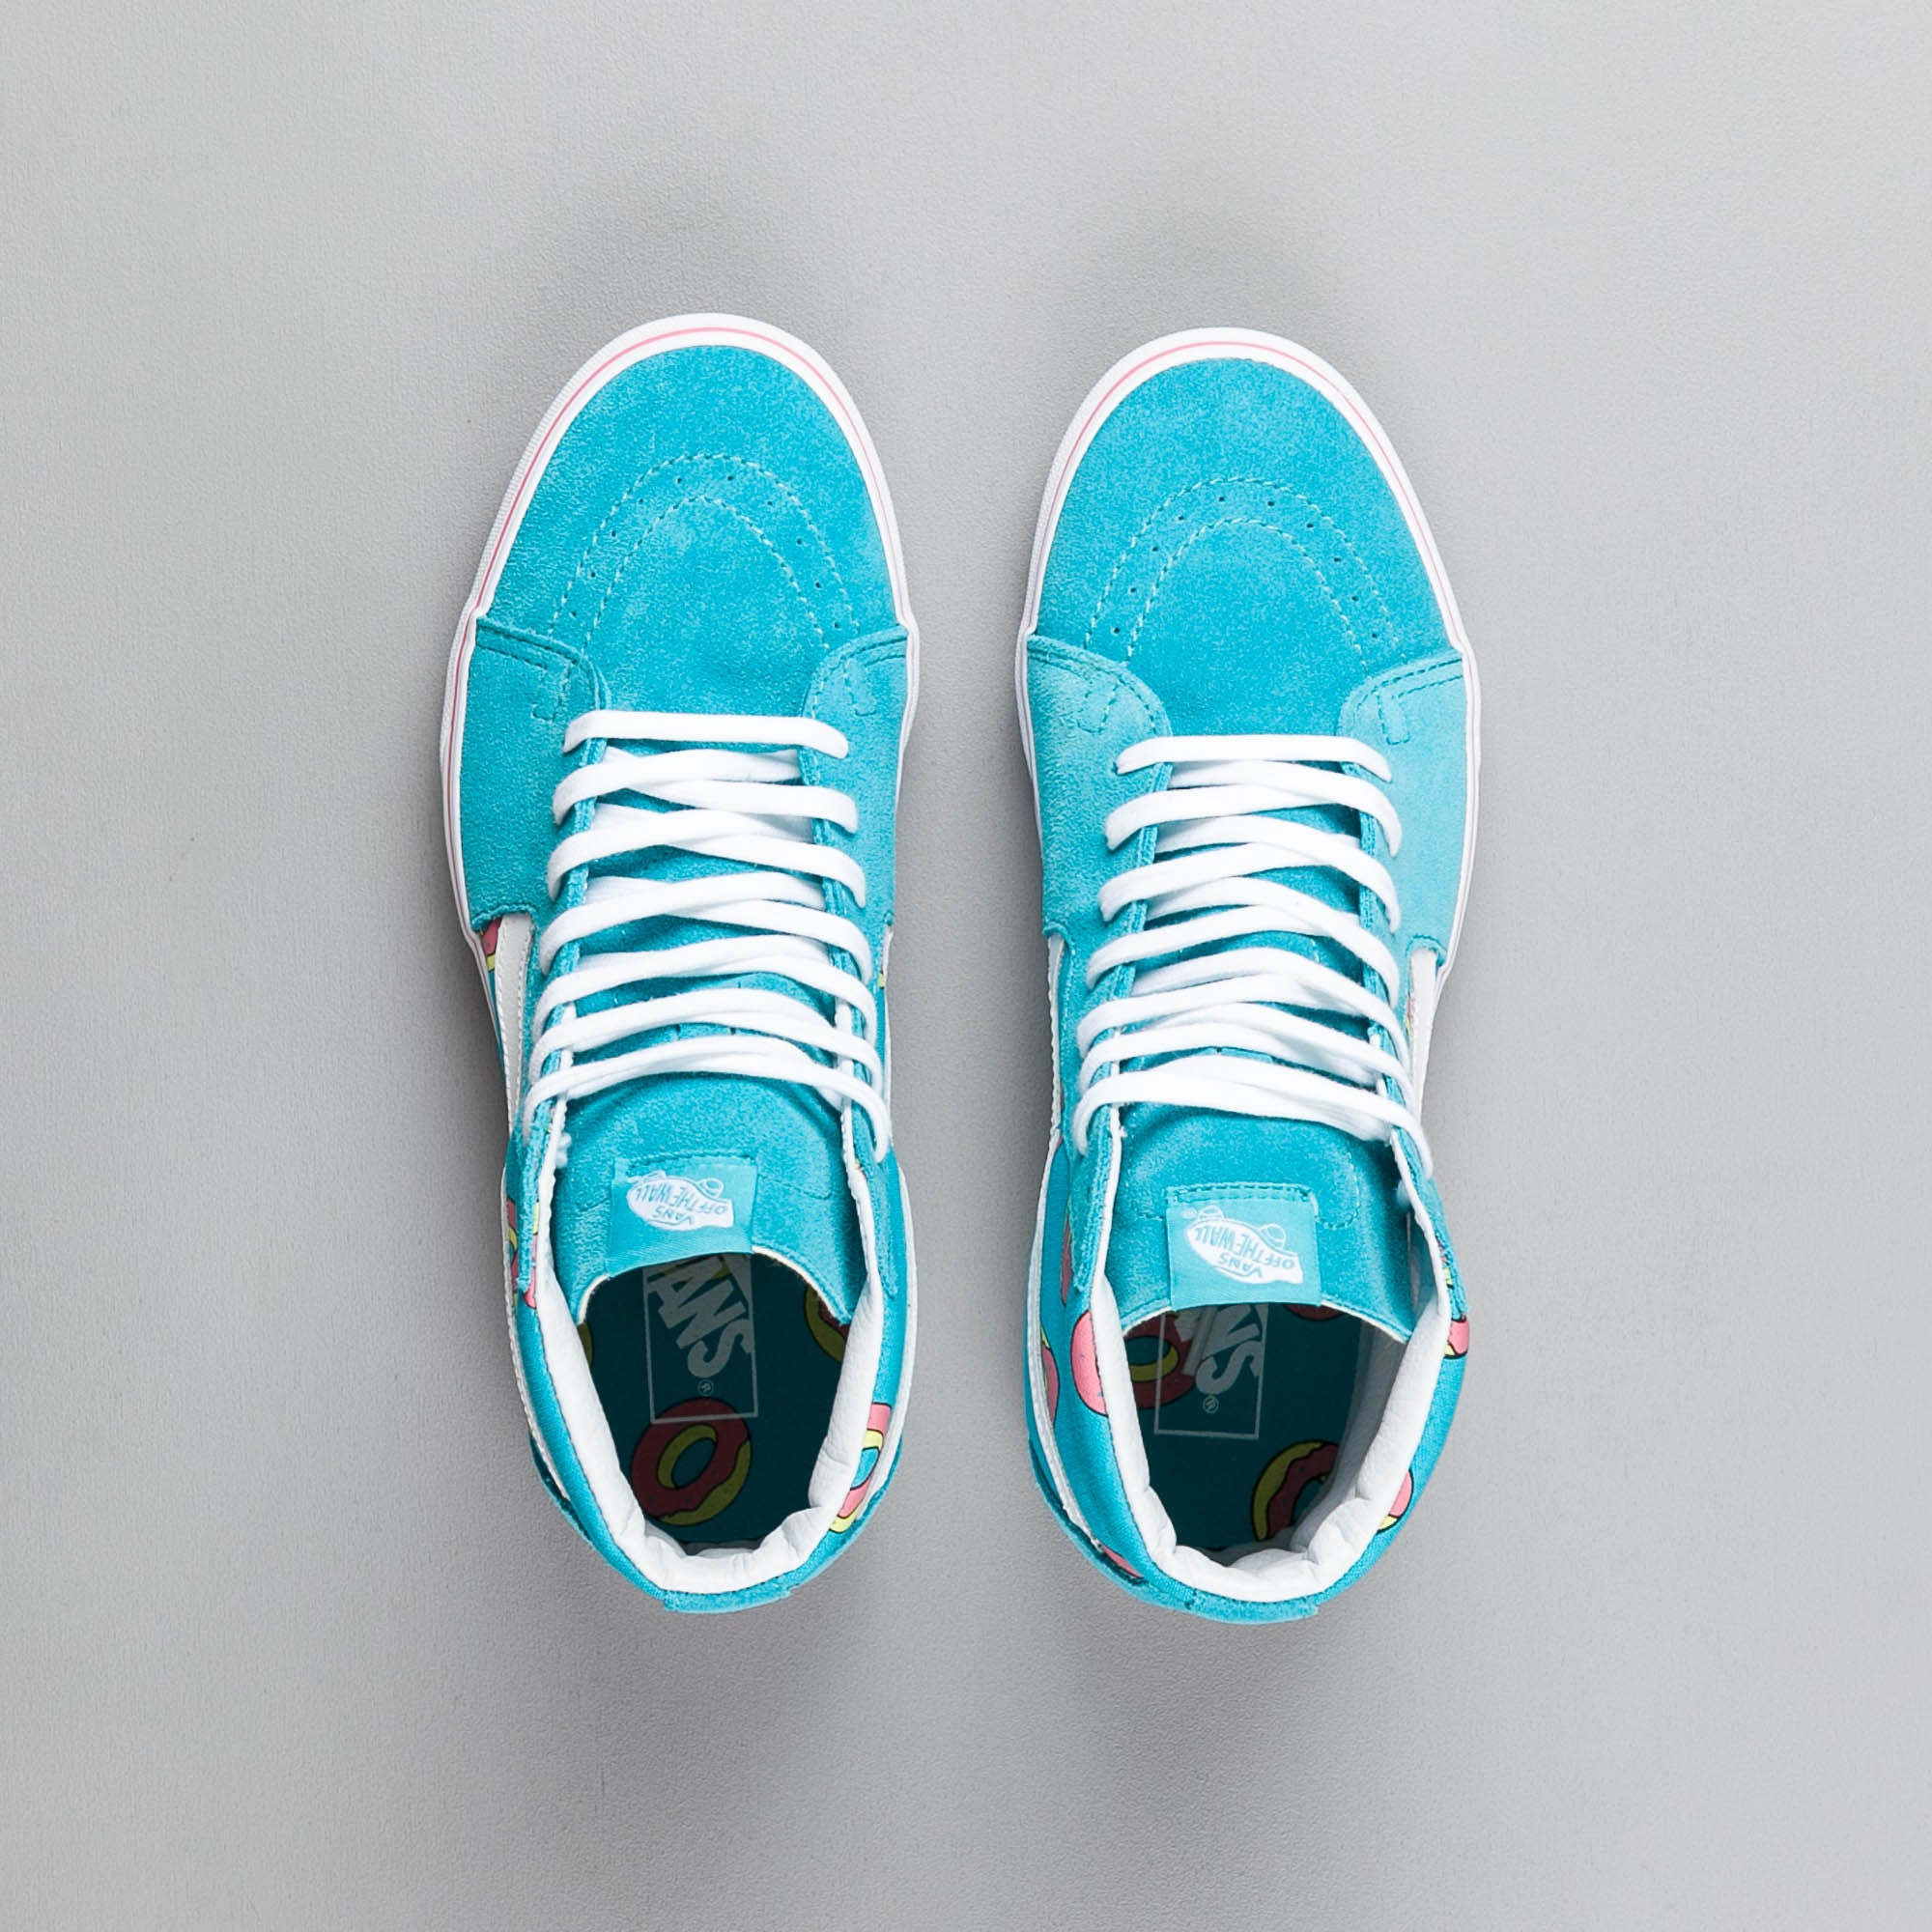 9b88251e5e7c6f Odd Future x Vans Sk8-Hi OF Donut Shoes - Scuba Blue ...